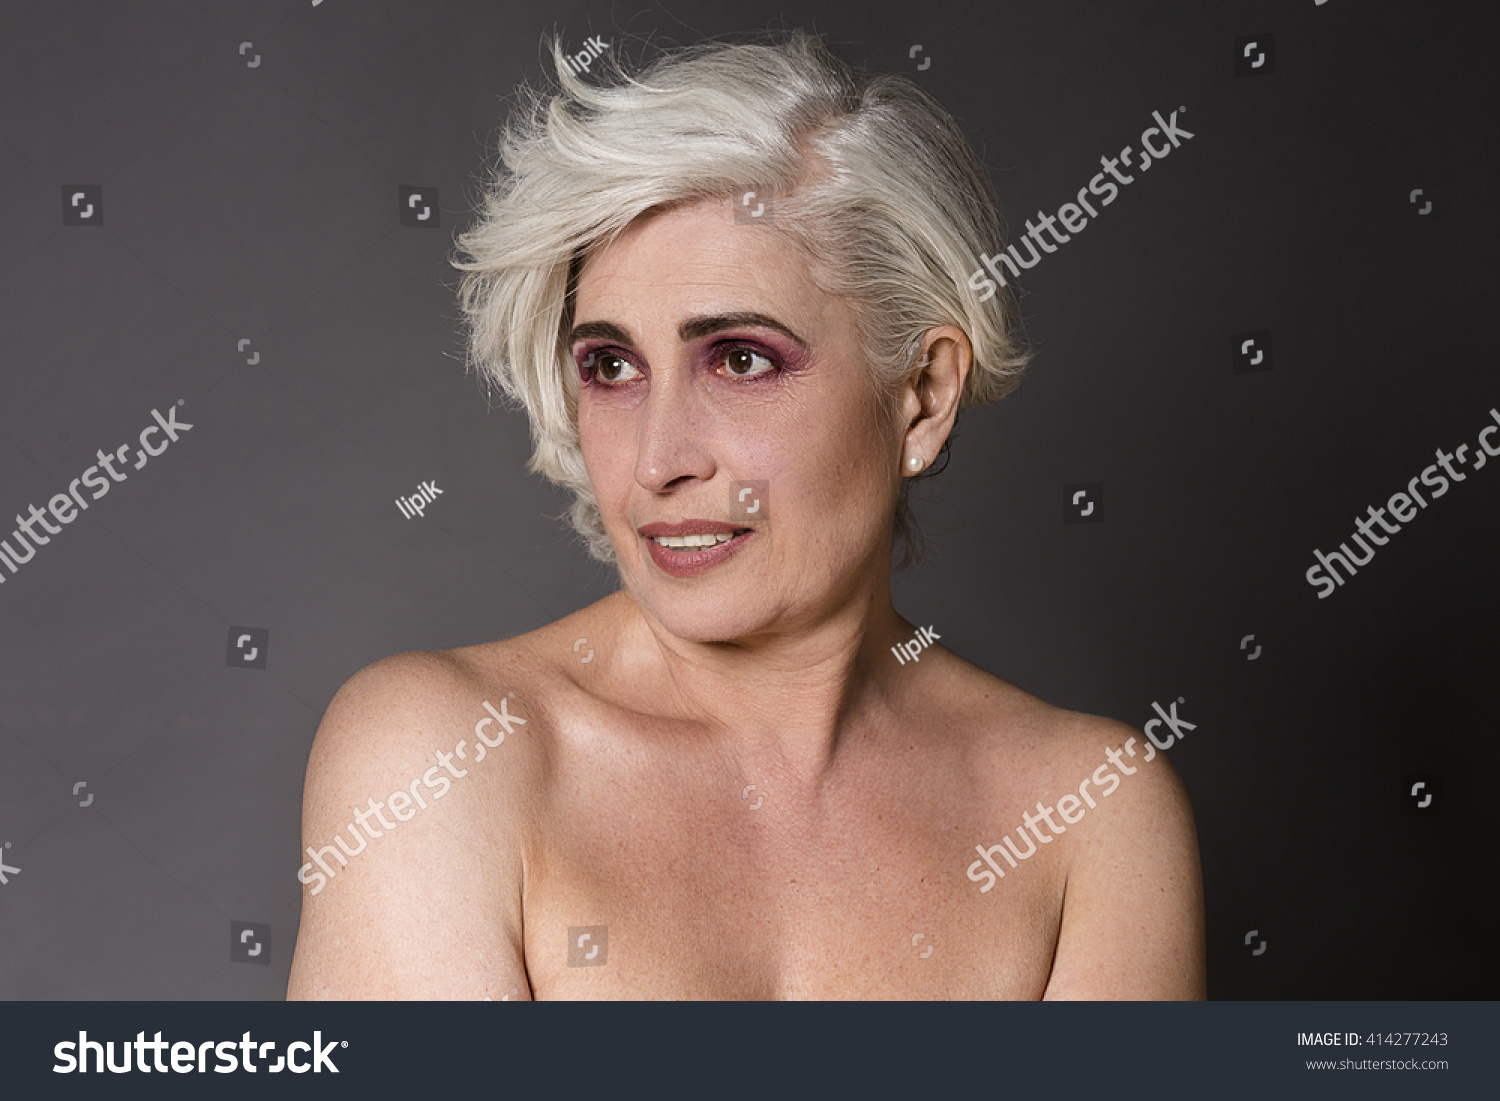 royalty-free portrait of nude old woman - head and… #414277243 stock